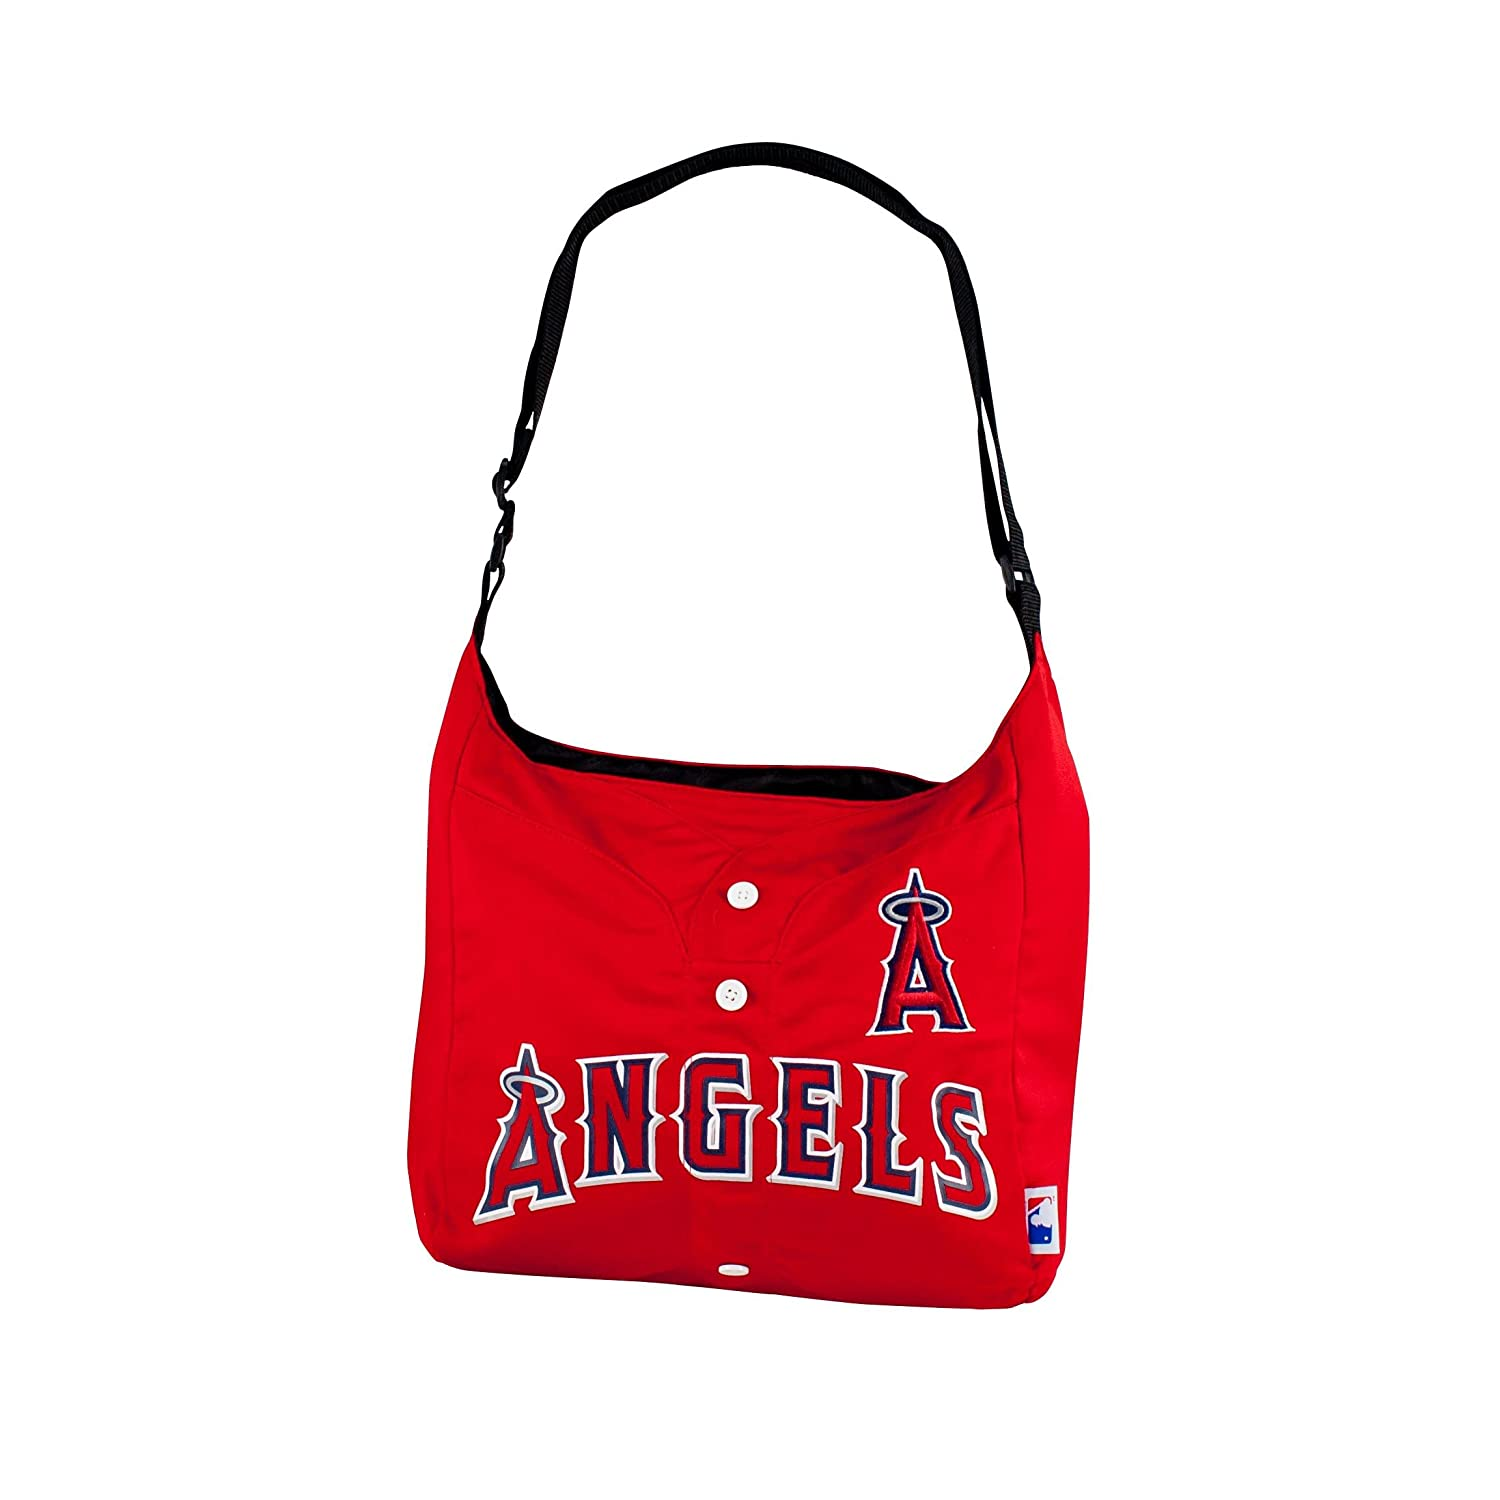 d72602f0494 Amazon.com   MLB Boston Red Sox Team Jersey Tote   Sports Fan Totebags    Sports   Outdoors